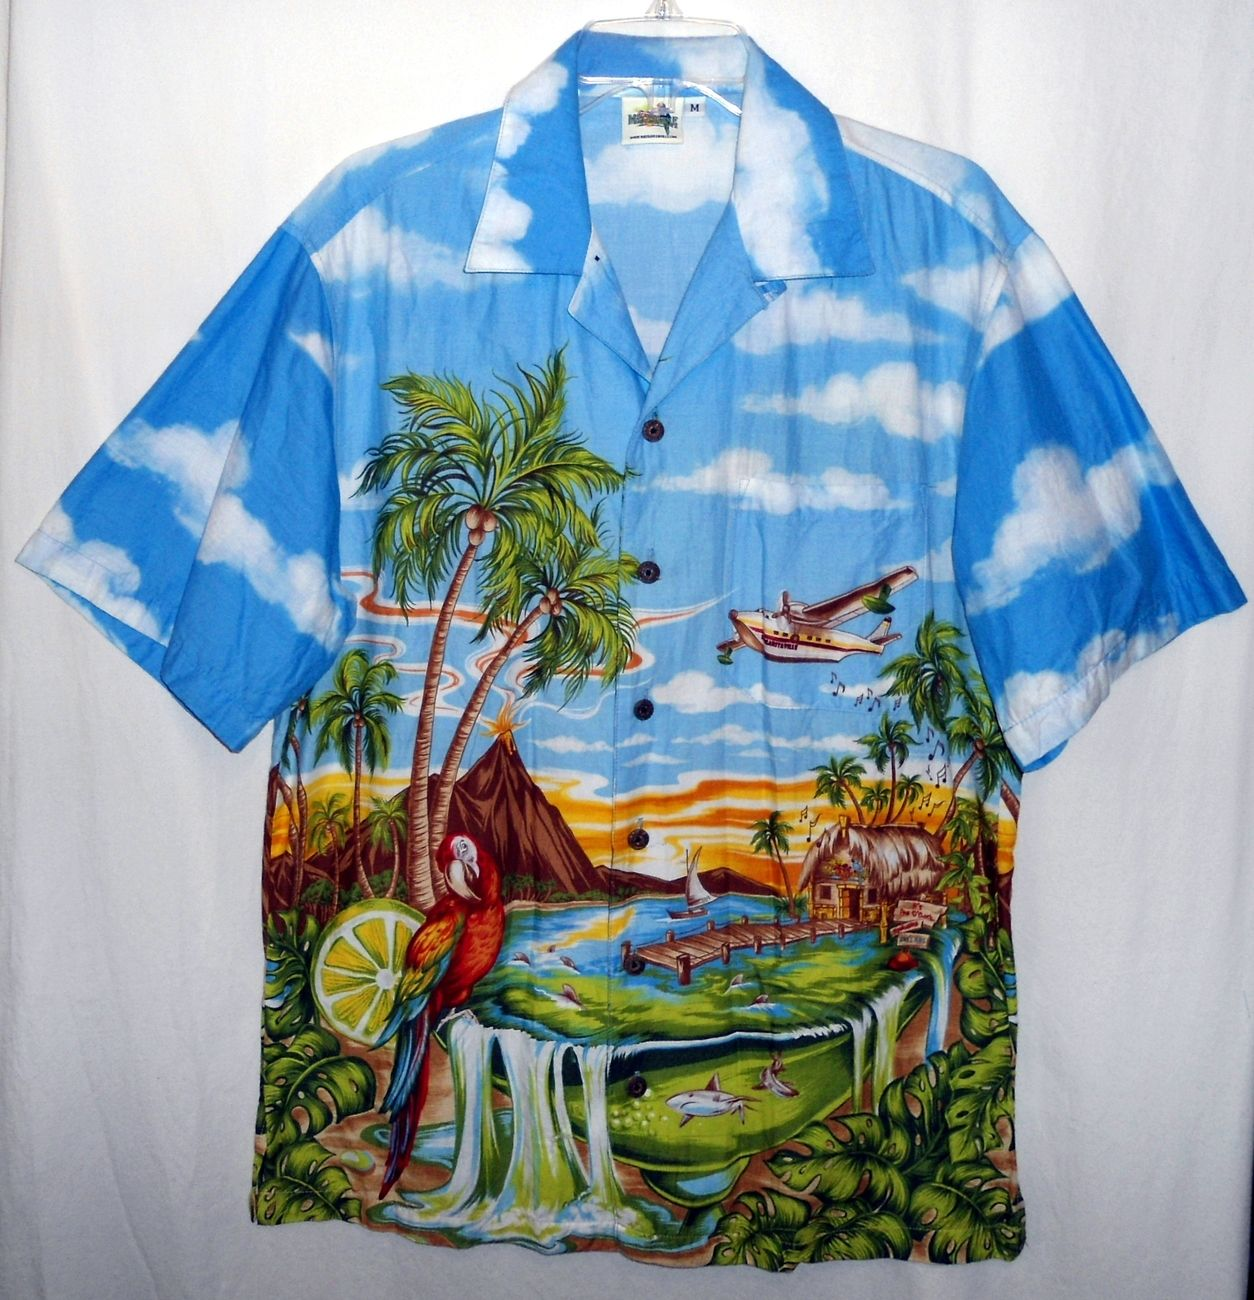 caebcecd Jimmy Buffett's Margaritaville * MENS Medium HAWAIIAN CAMP SHIRT *  PARROTHEAD